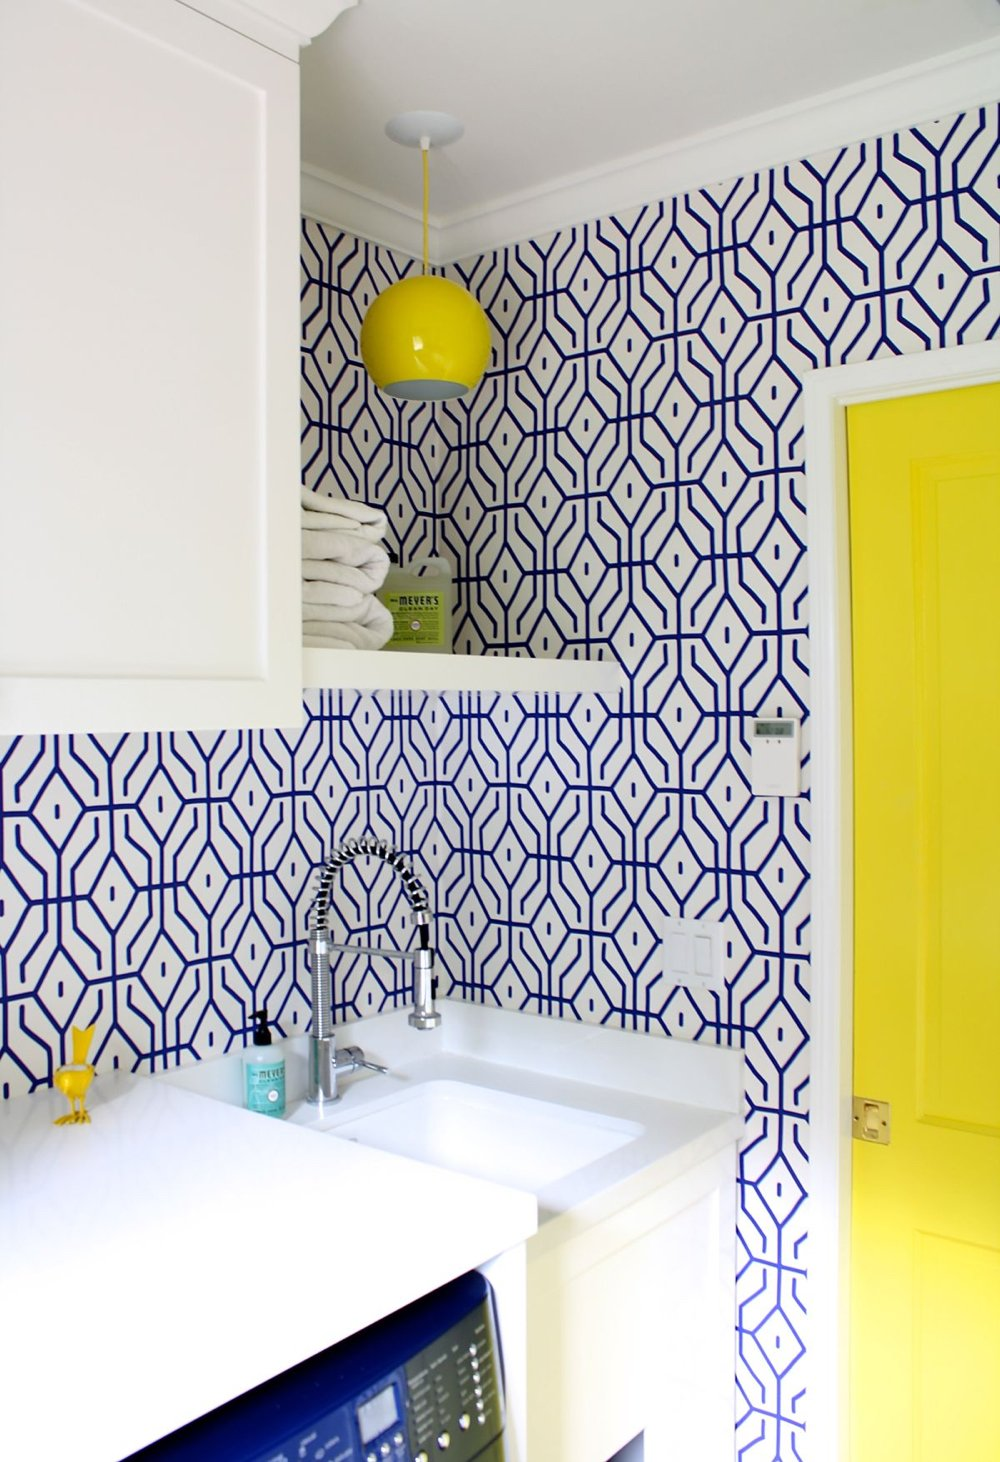 19 fabulous ideas how to add color to your laundry room - homelovr